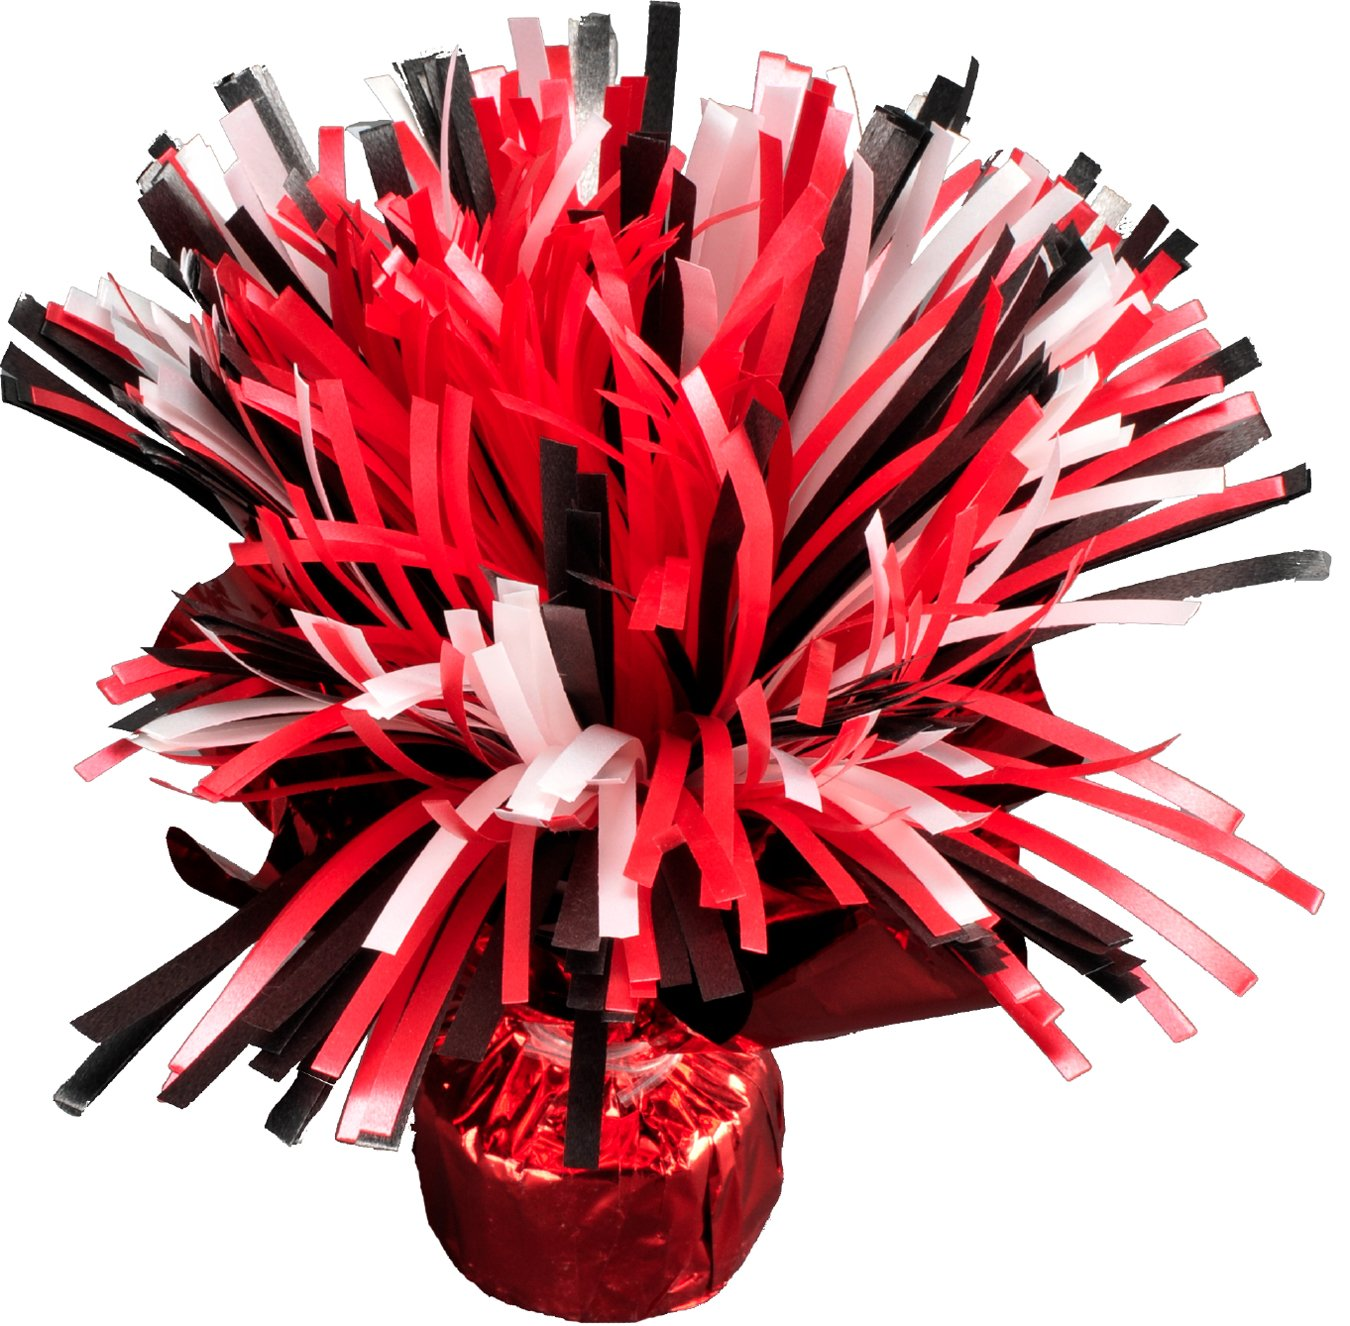 20 across, Festive Tailgate Accessory Havercamp Team Party Collection by Havercamp White and Black Shaker Centerpiece Balloon Weight Red